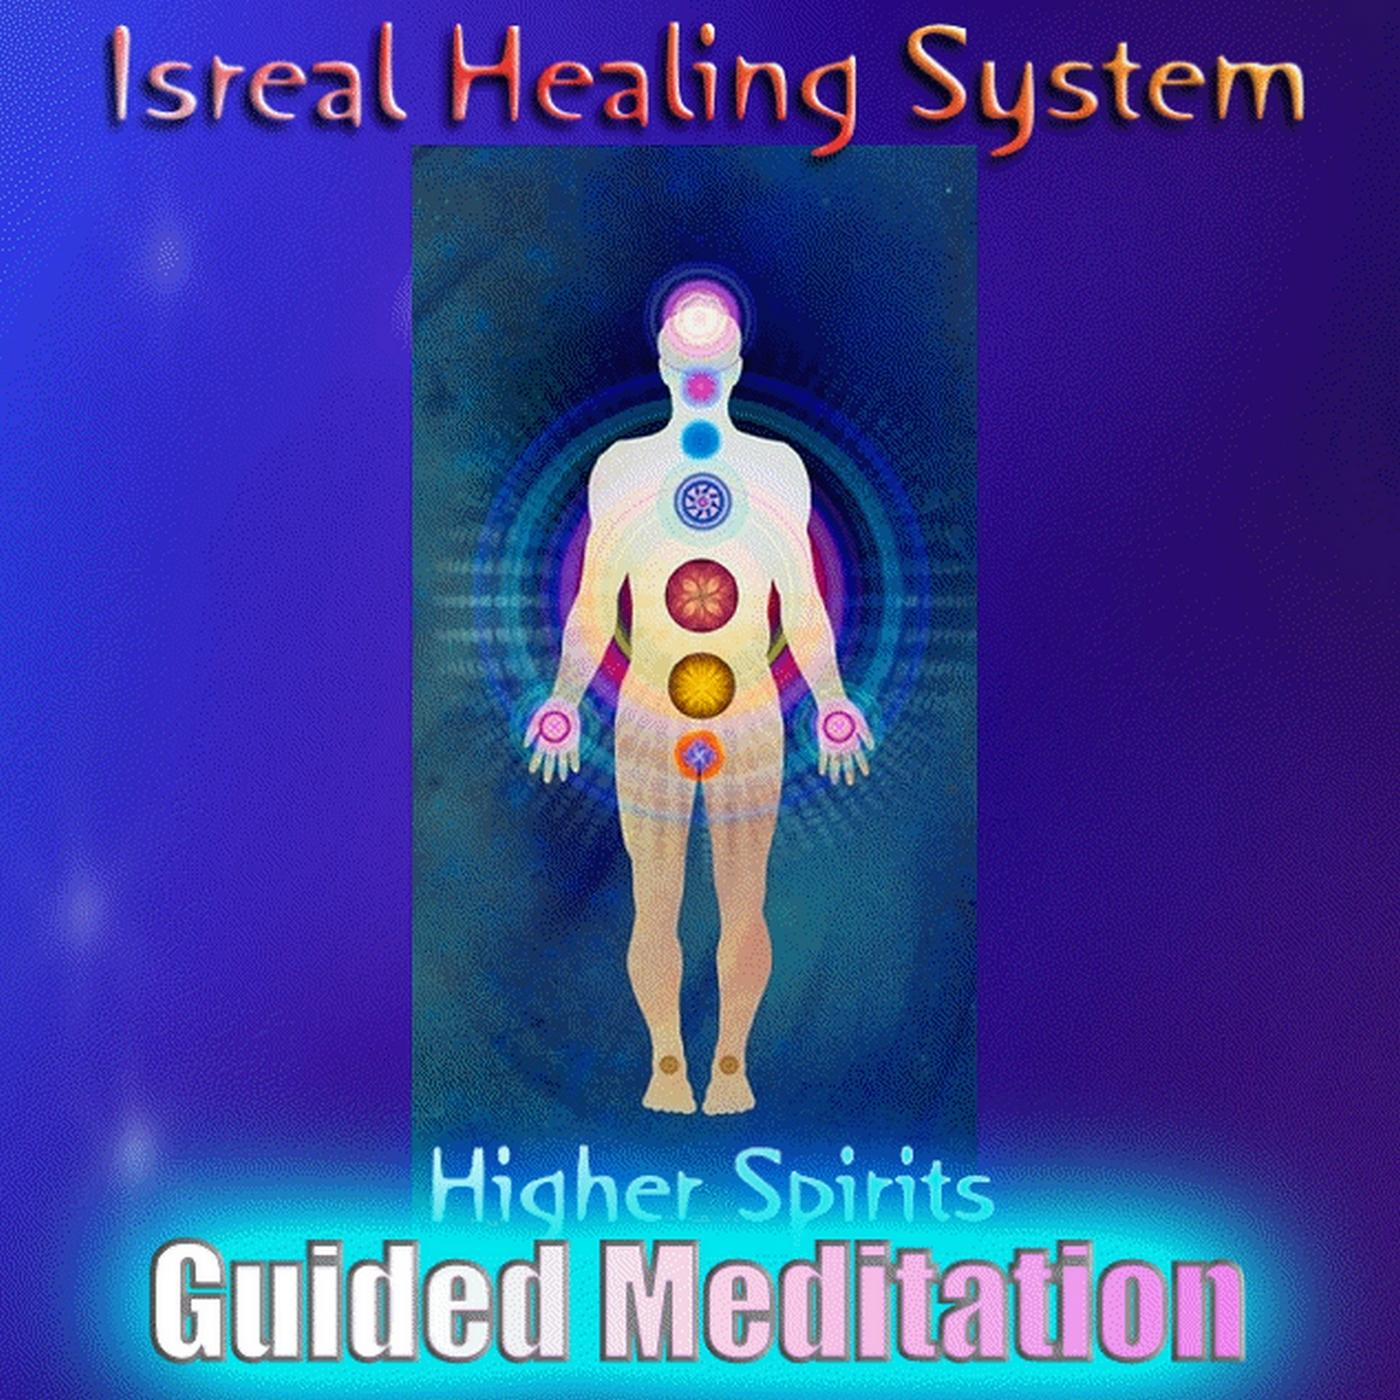 Higher Spirits Guided Meditation